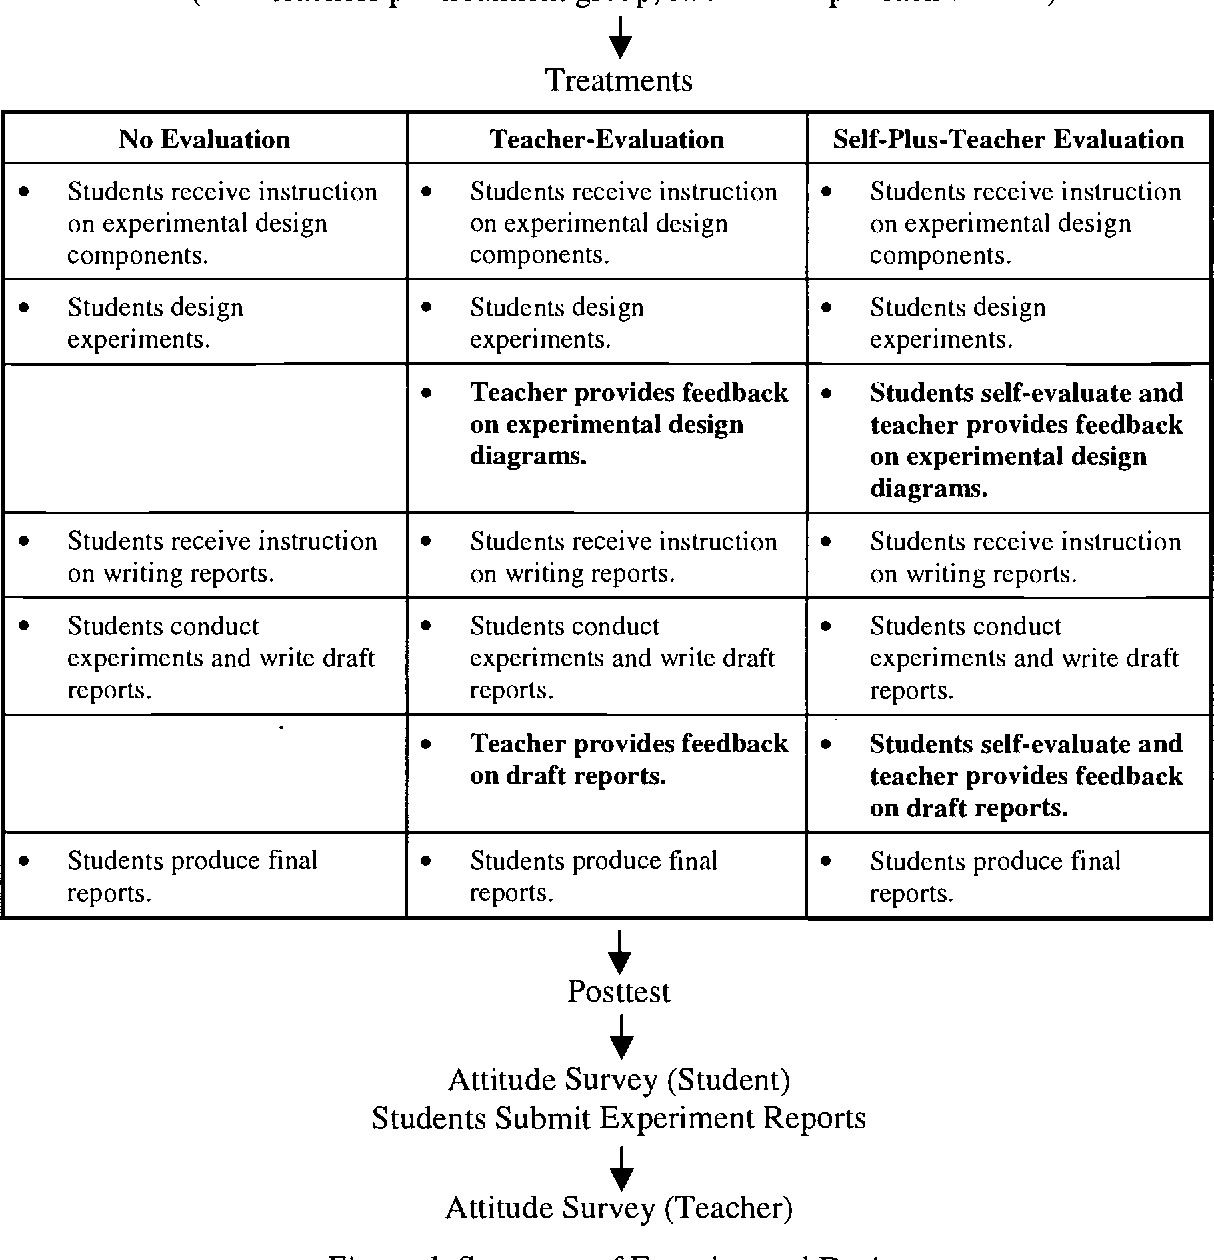 PDF] Effects of Teacher and Self-Assessment on Student